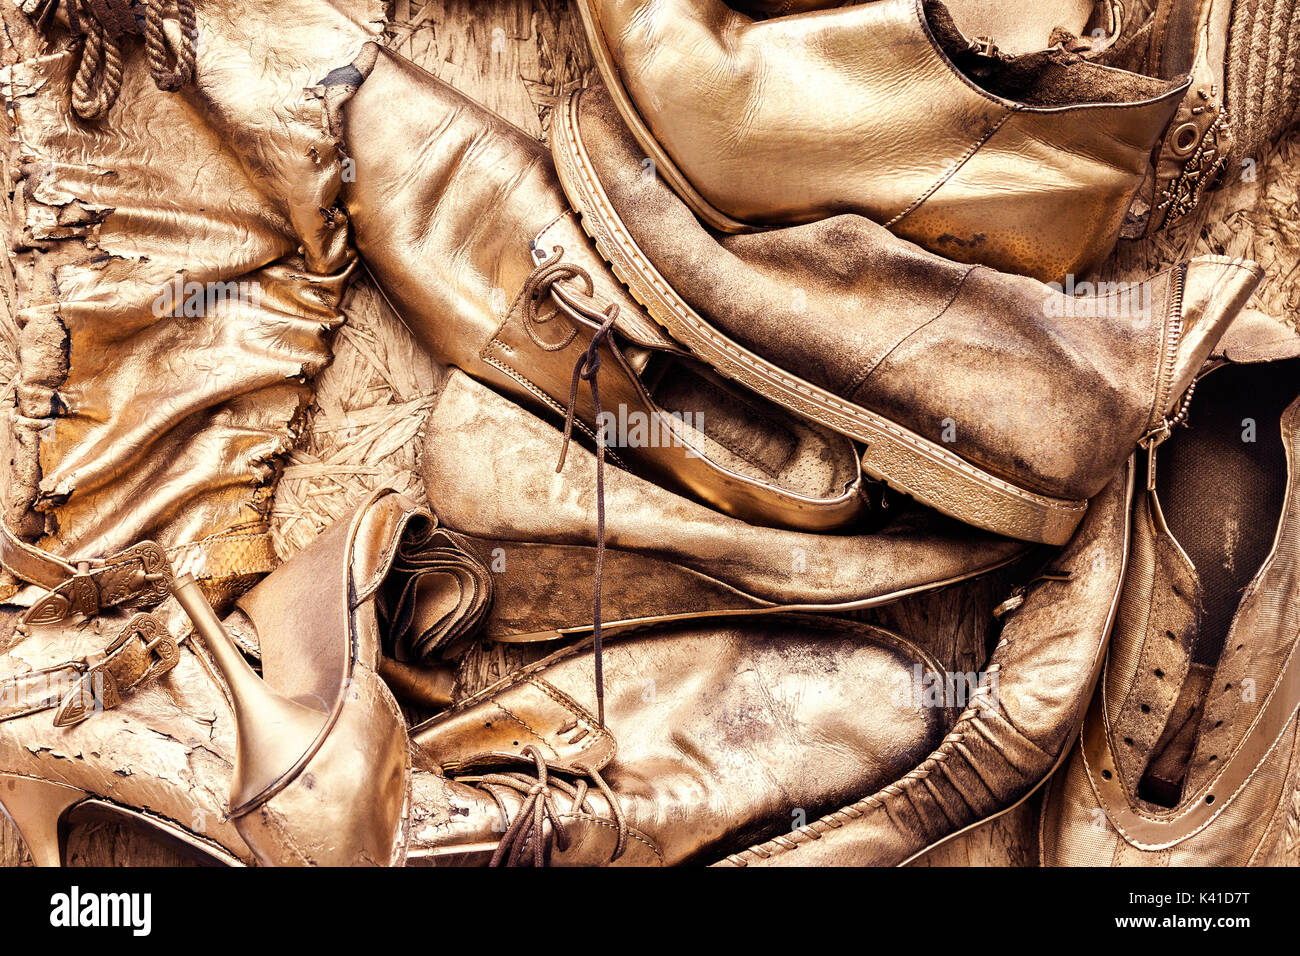 Bunch of old worn out shoes and boots painted in golden yellow color - Stock Image